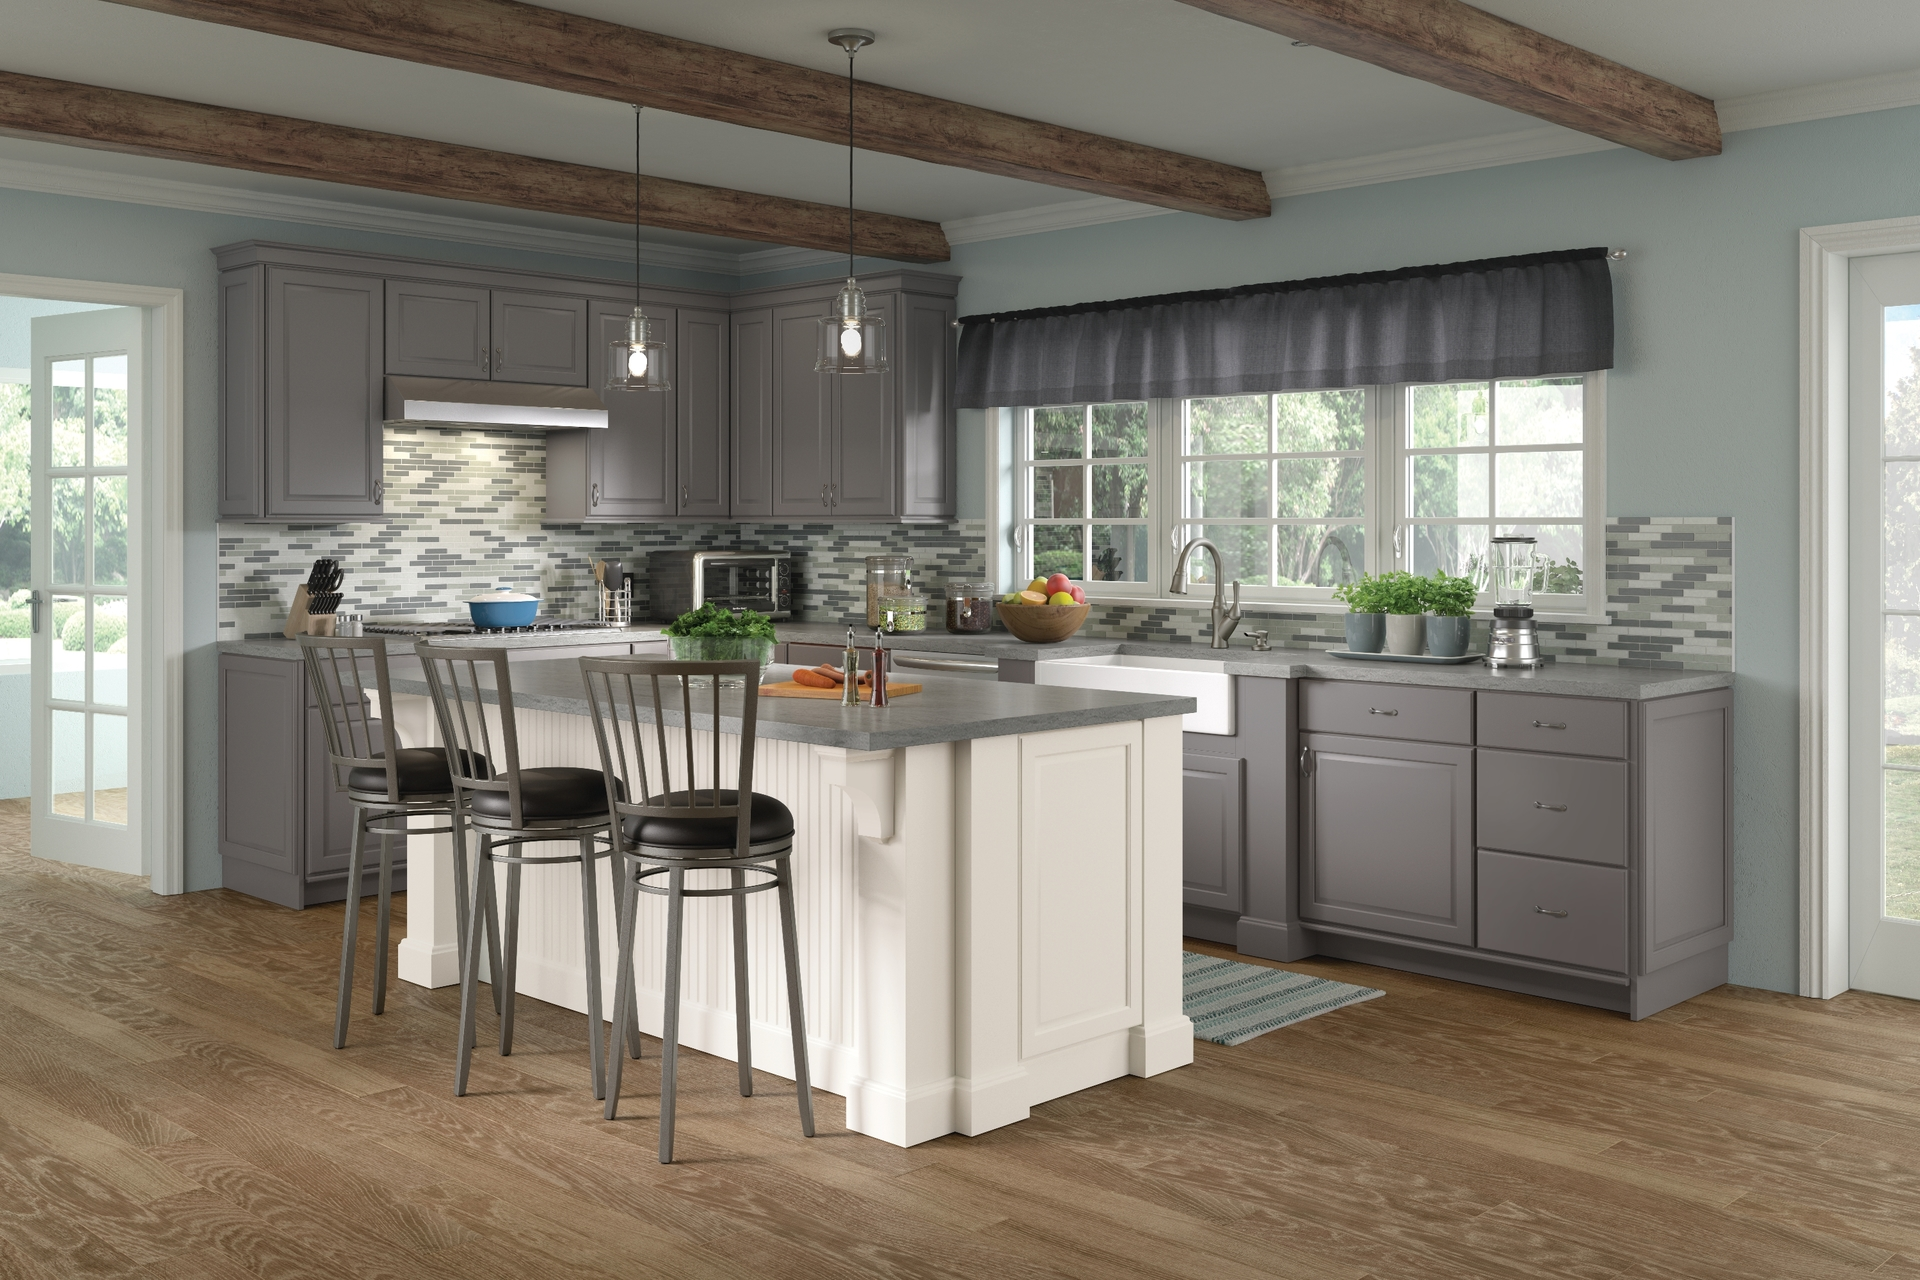 Cardell Kitchen Cabinets - Fox Valley Maple Square Full ...